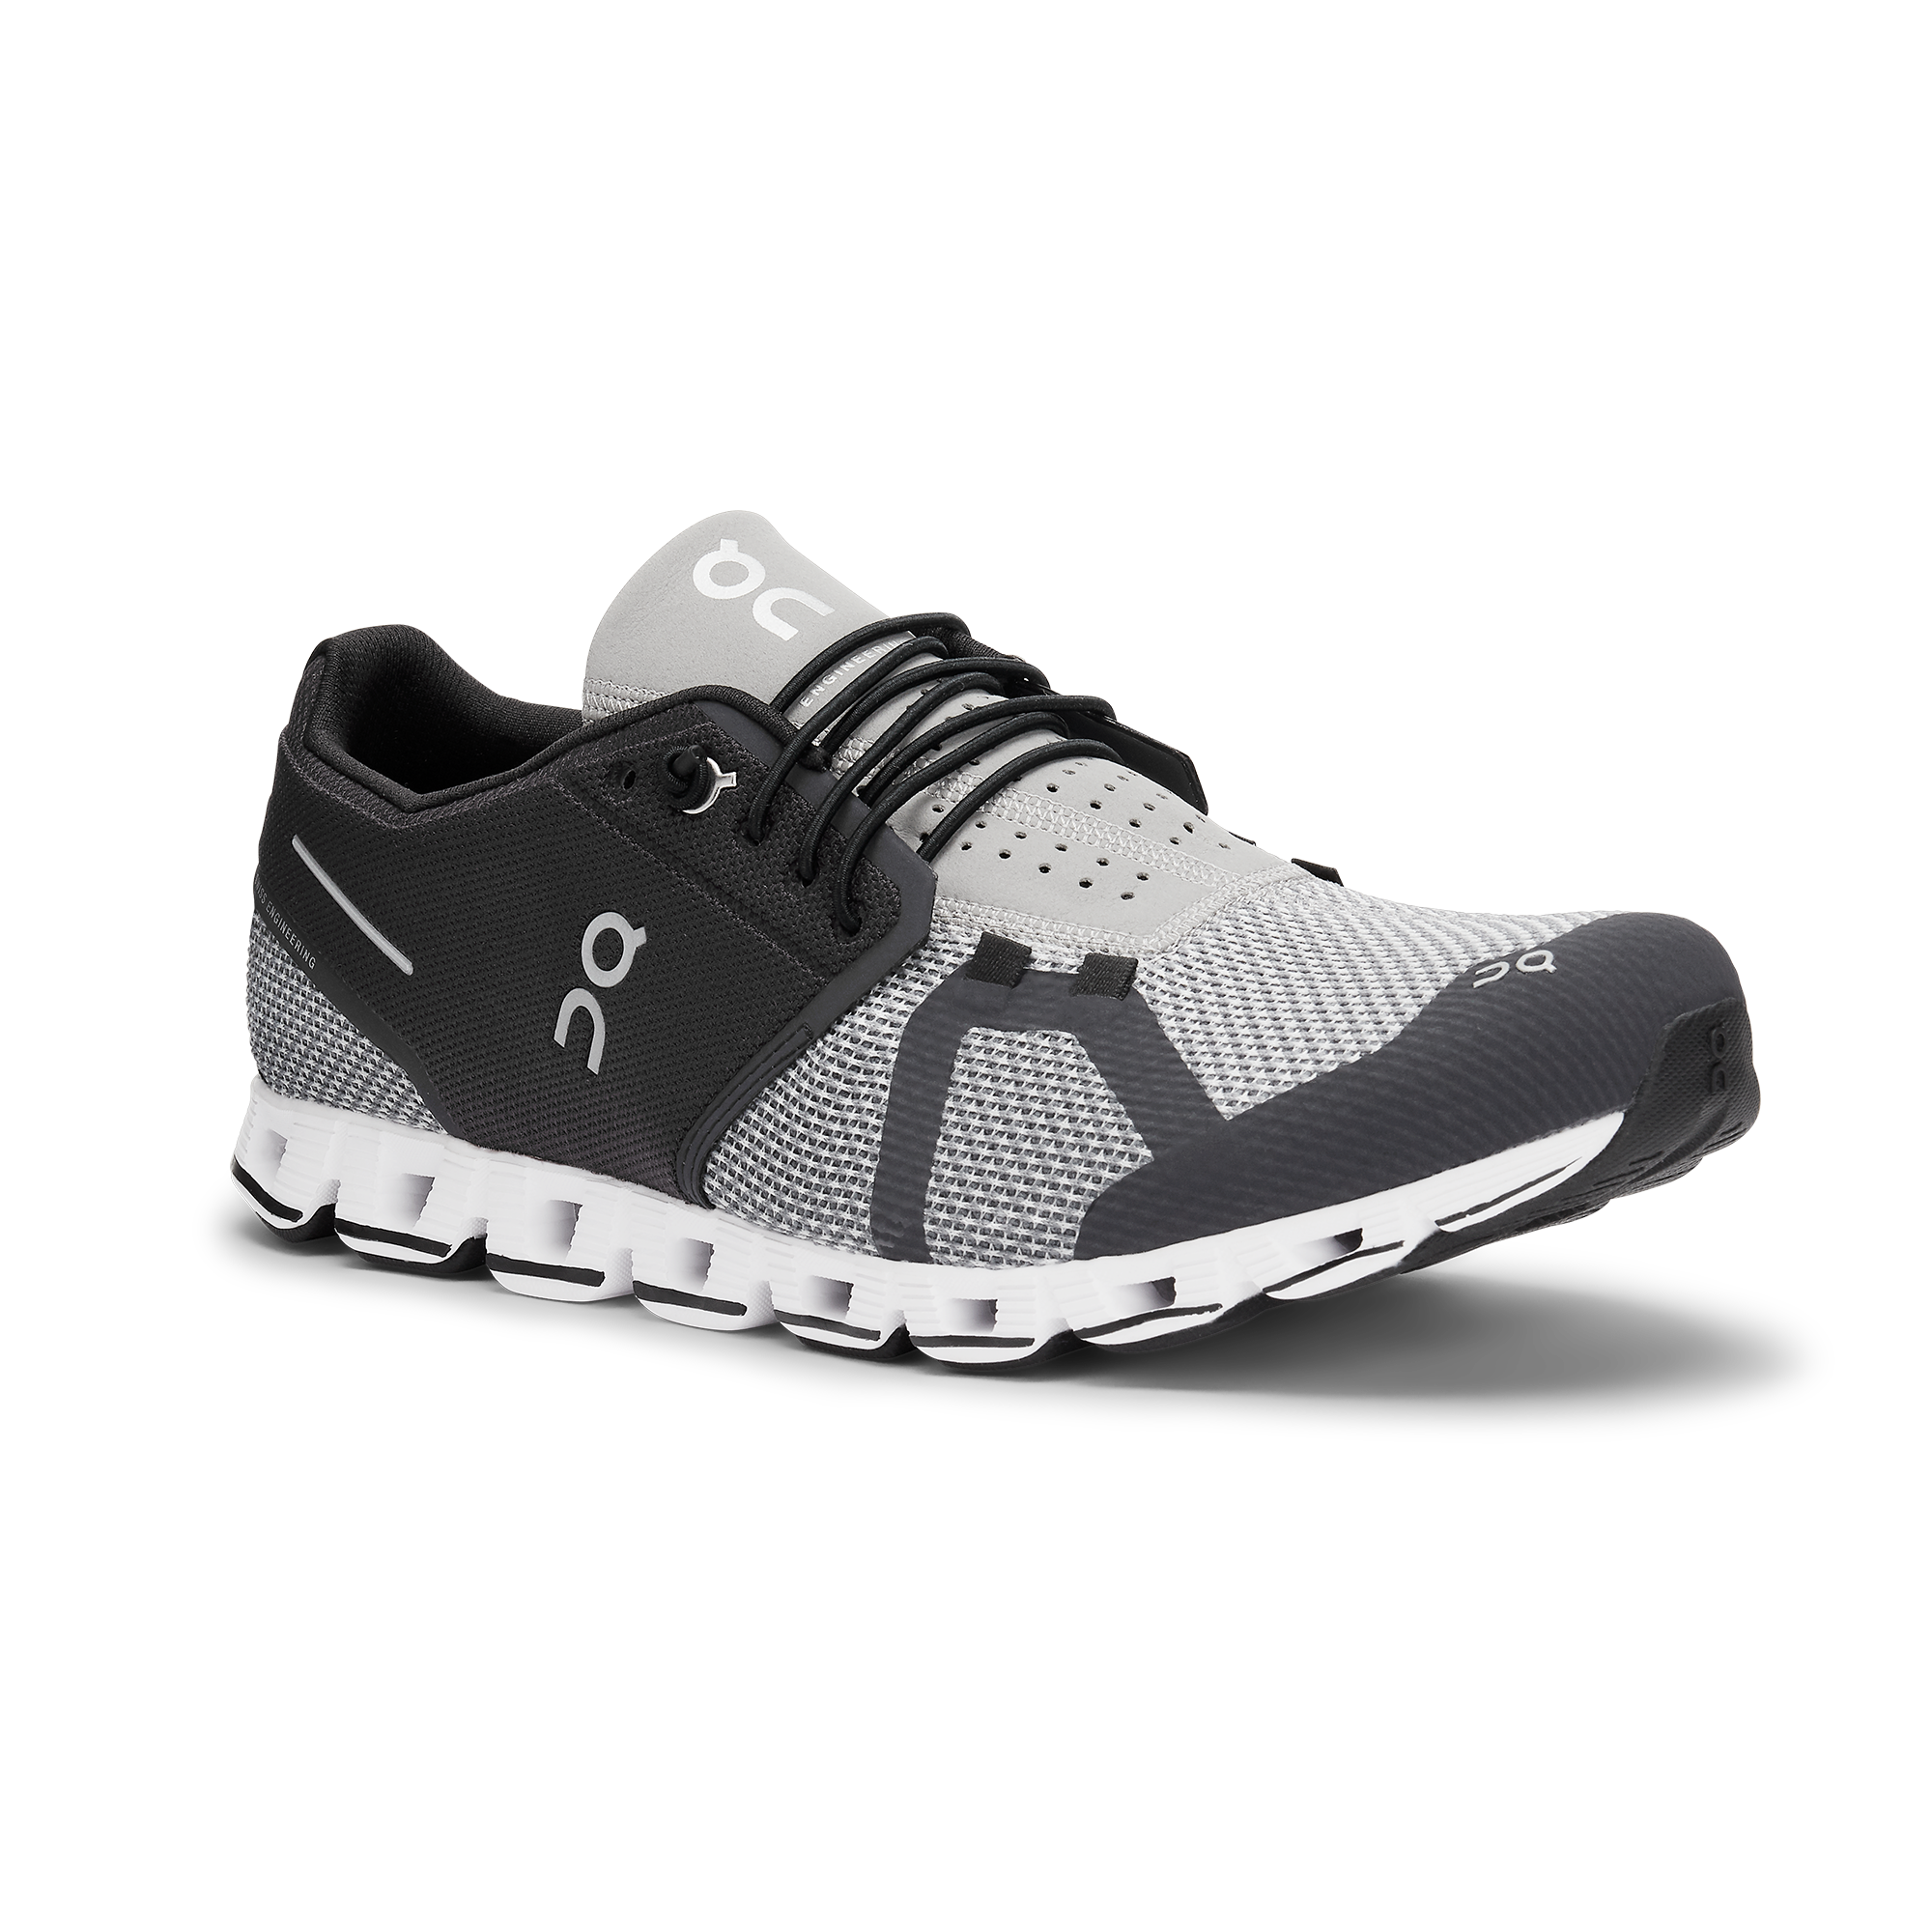 Running Cloud Cloud Lightweight Lightweight ShoeOn Running sQCtrdhx